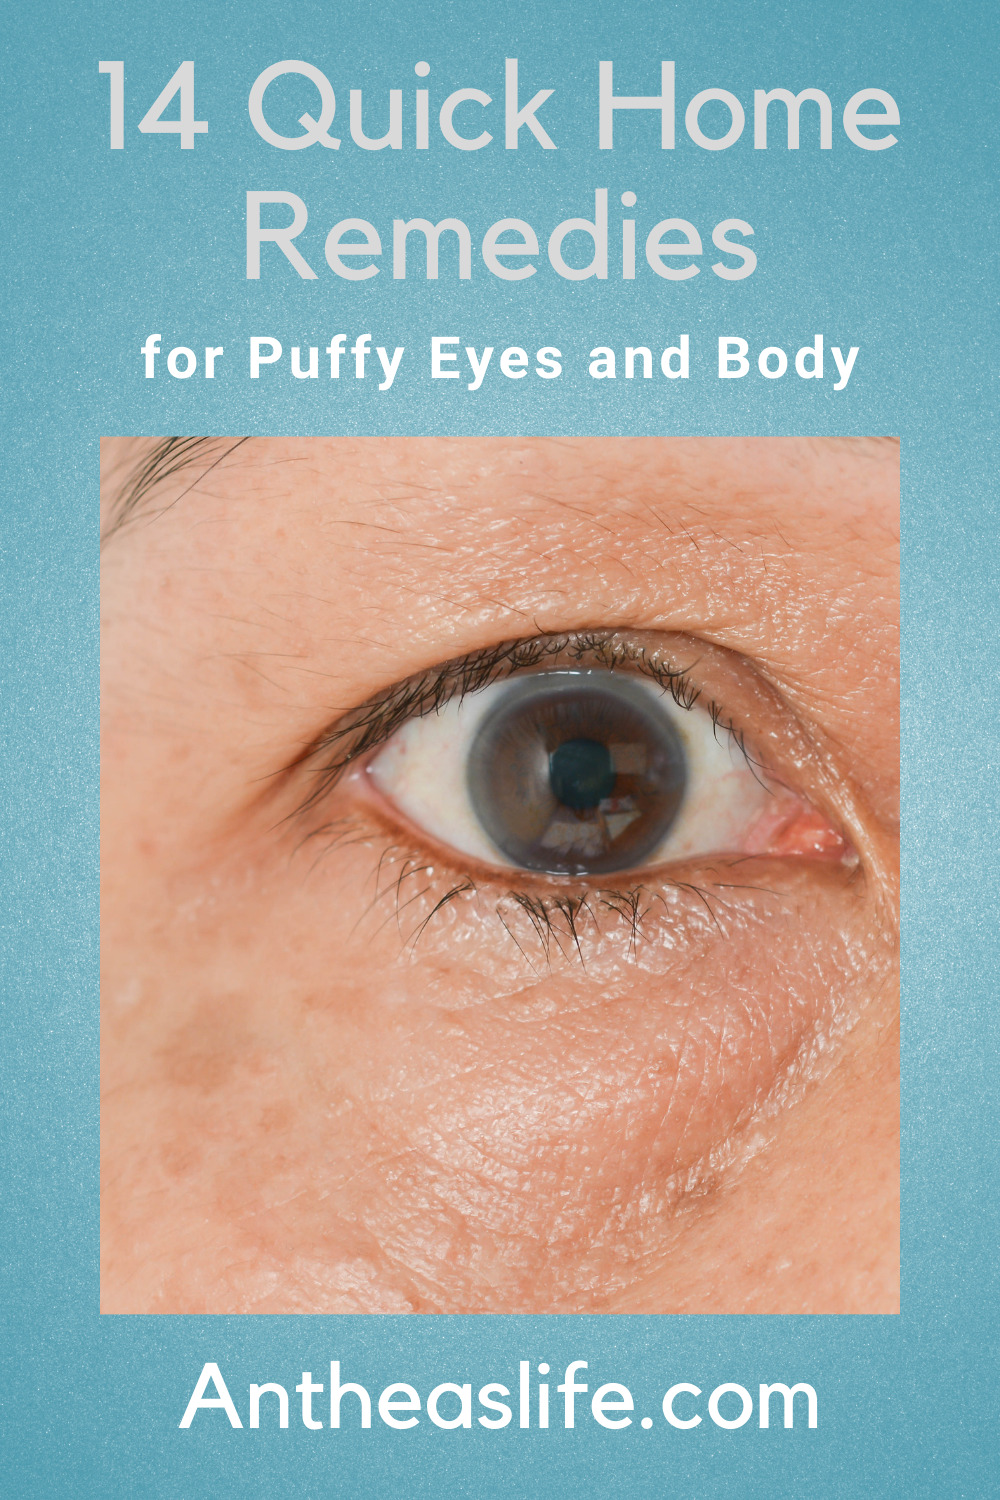 home-remedies-for-puffy-eyes-and-body